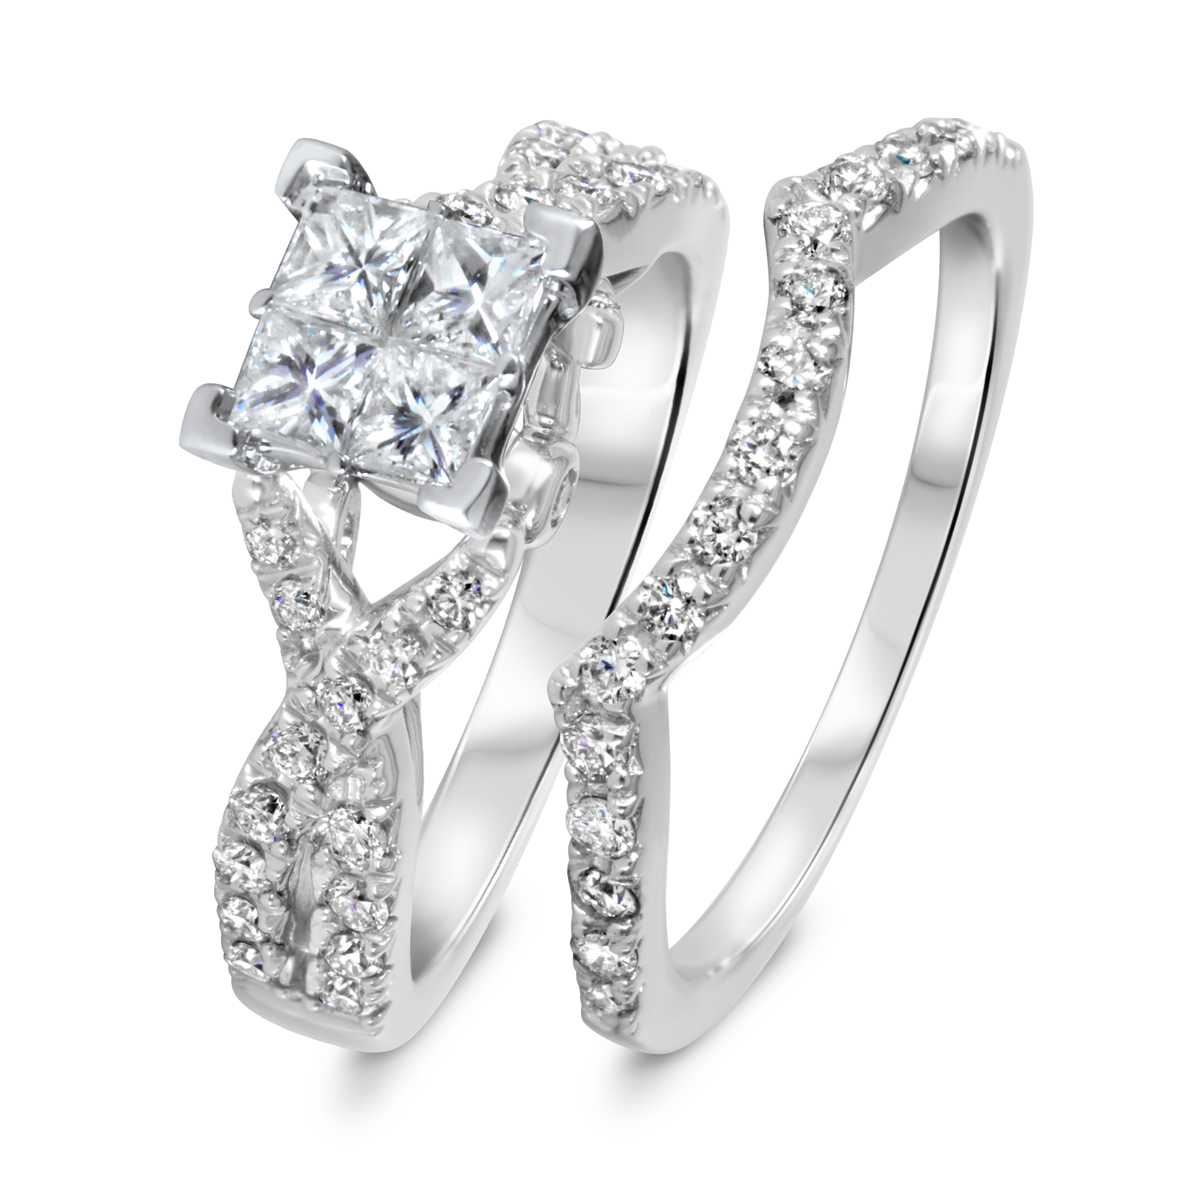 1 3/8 CT. T.W. Diamond Women's Bridal Wedding Ring Set 14K White Gold